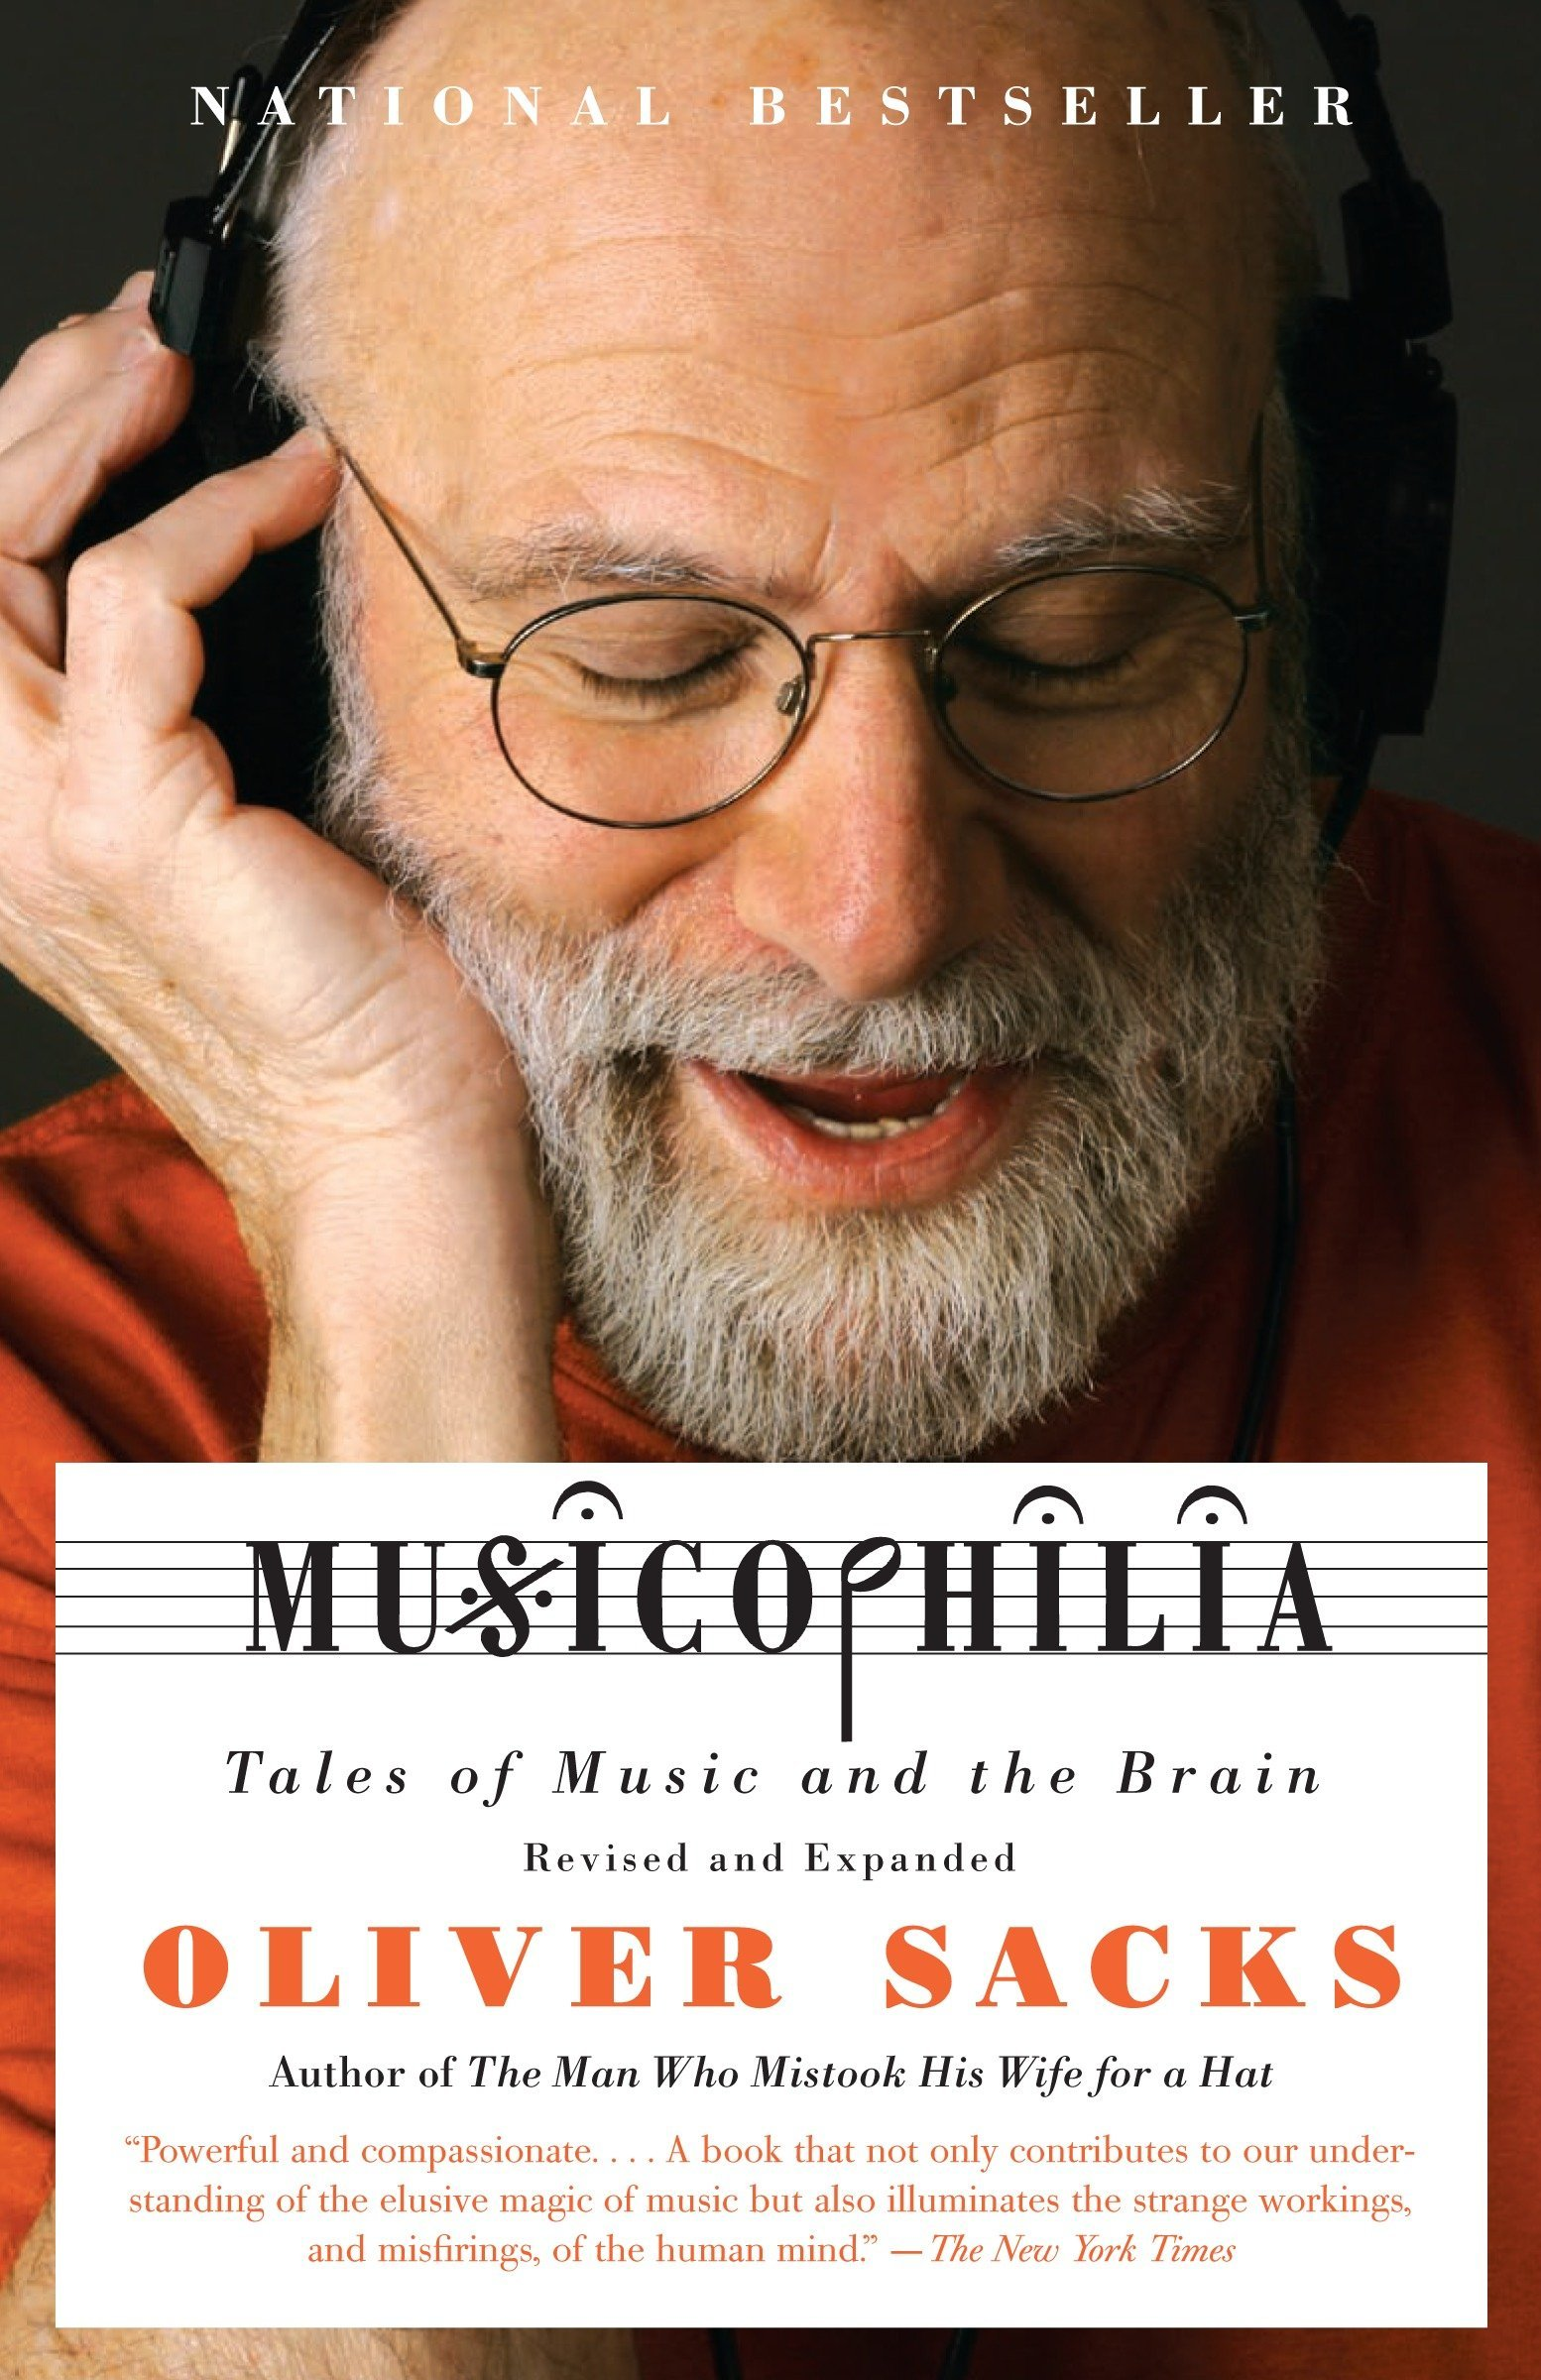 The late Oliver Sacks wrote prolifically about the brain in both music and non music circumstances.